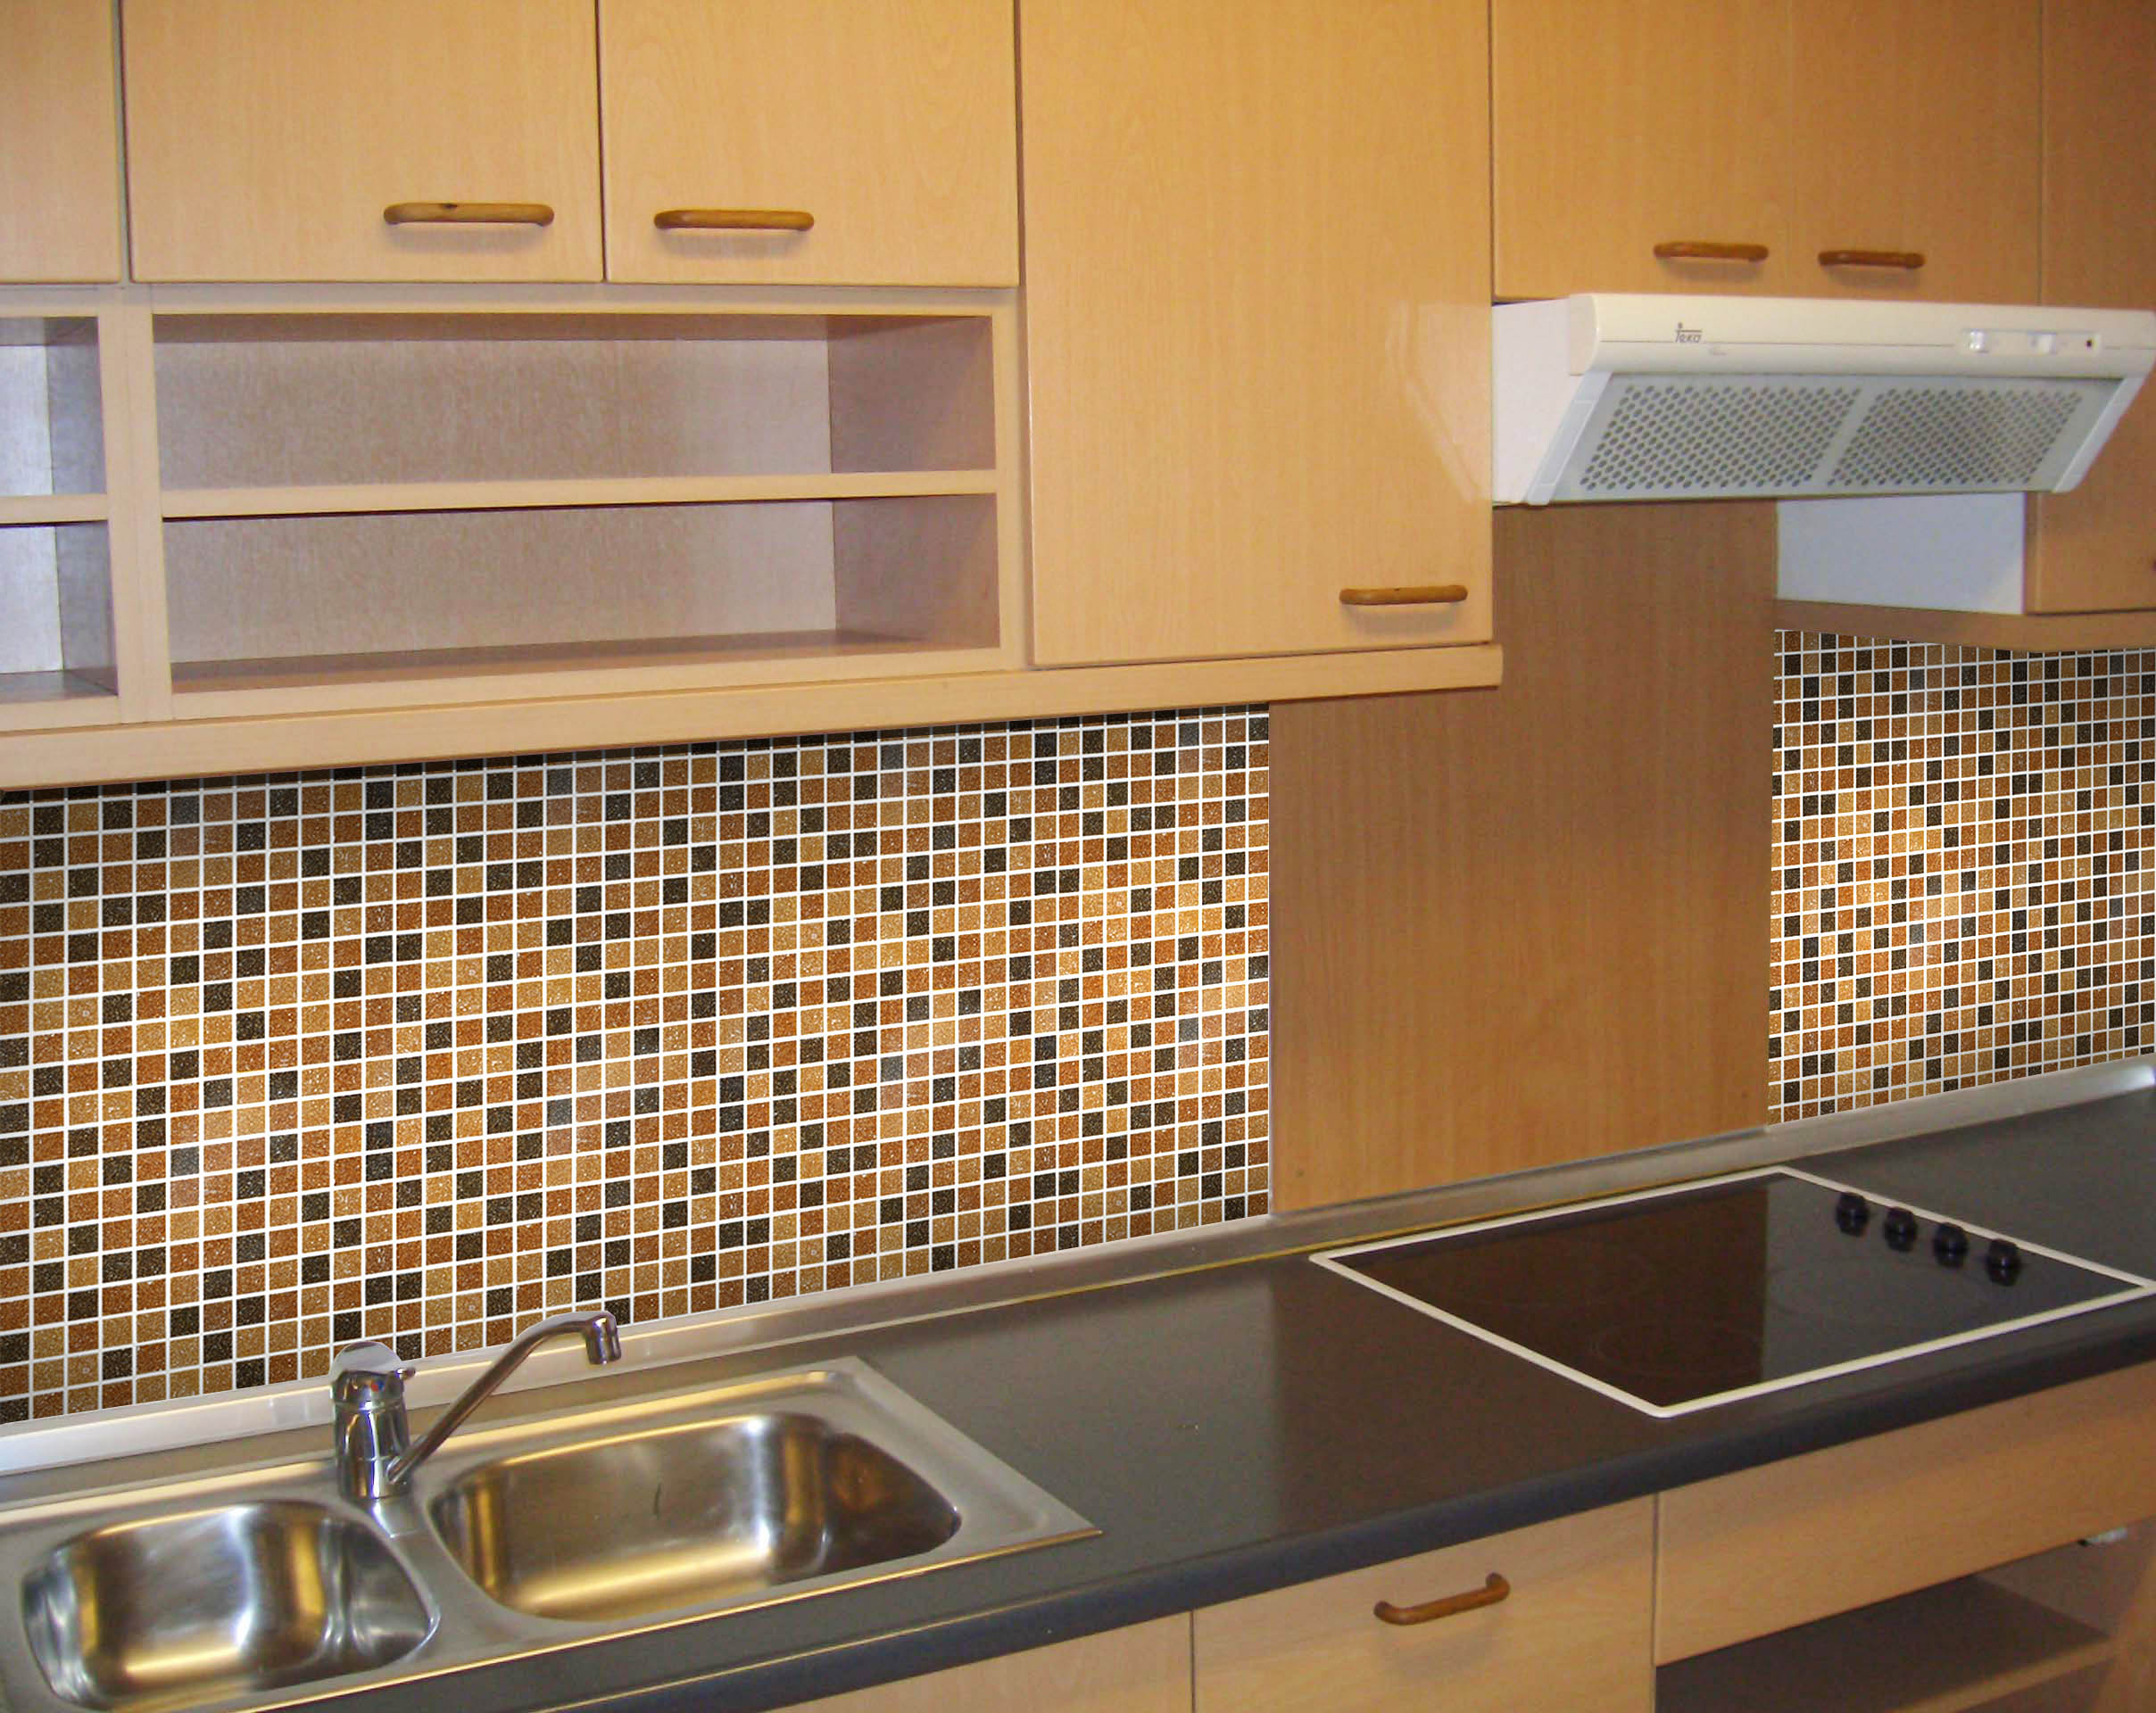 fine kitchen tiles mosaic with accents backsplash tumbled